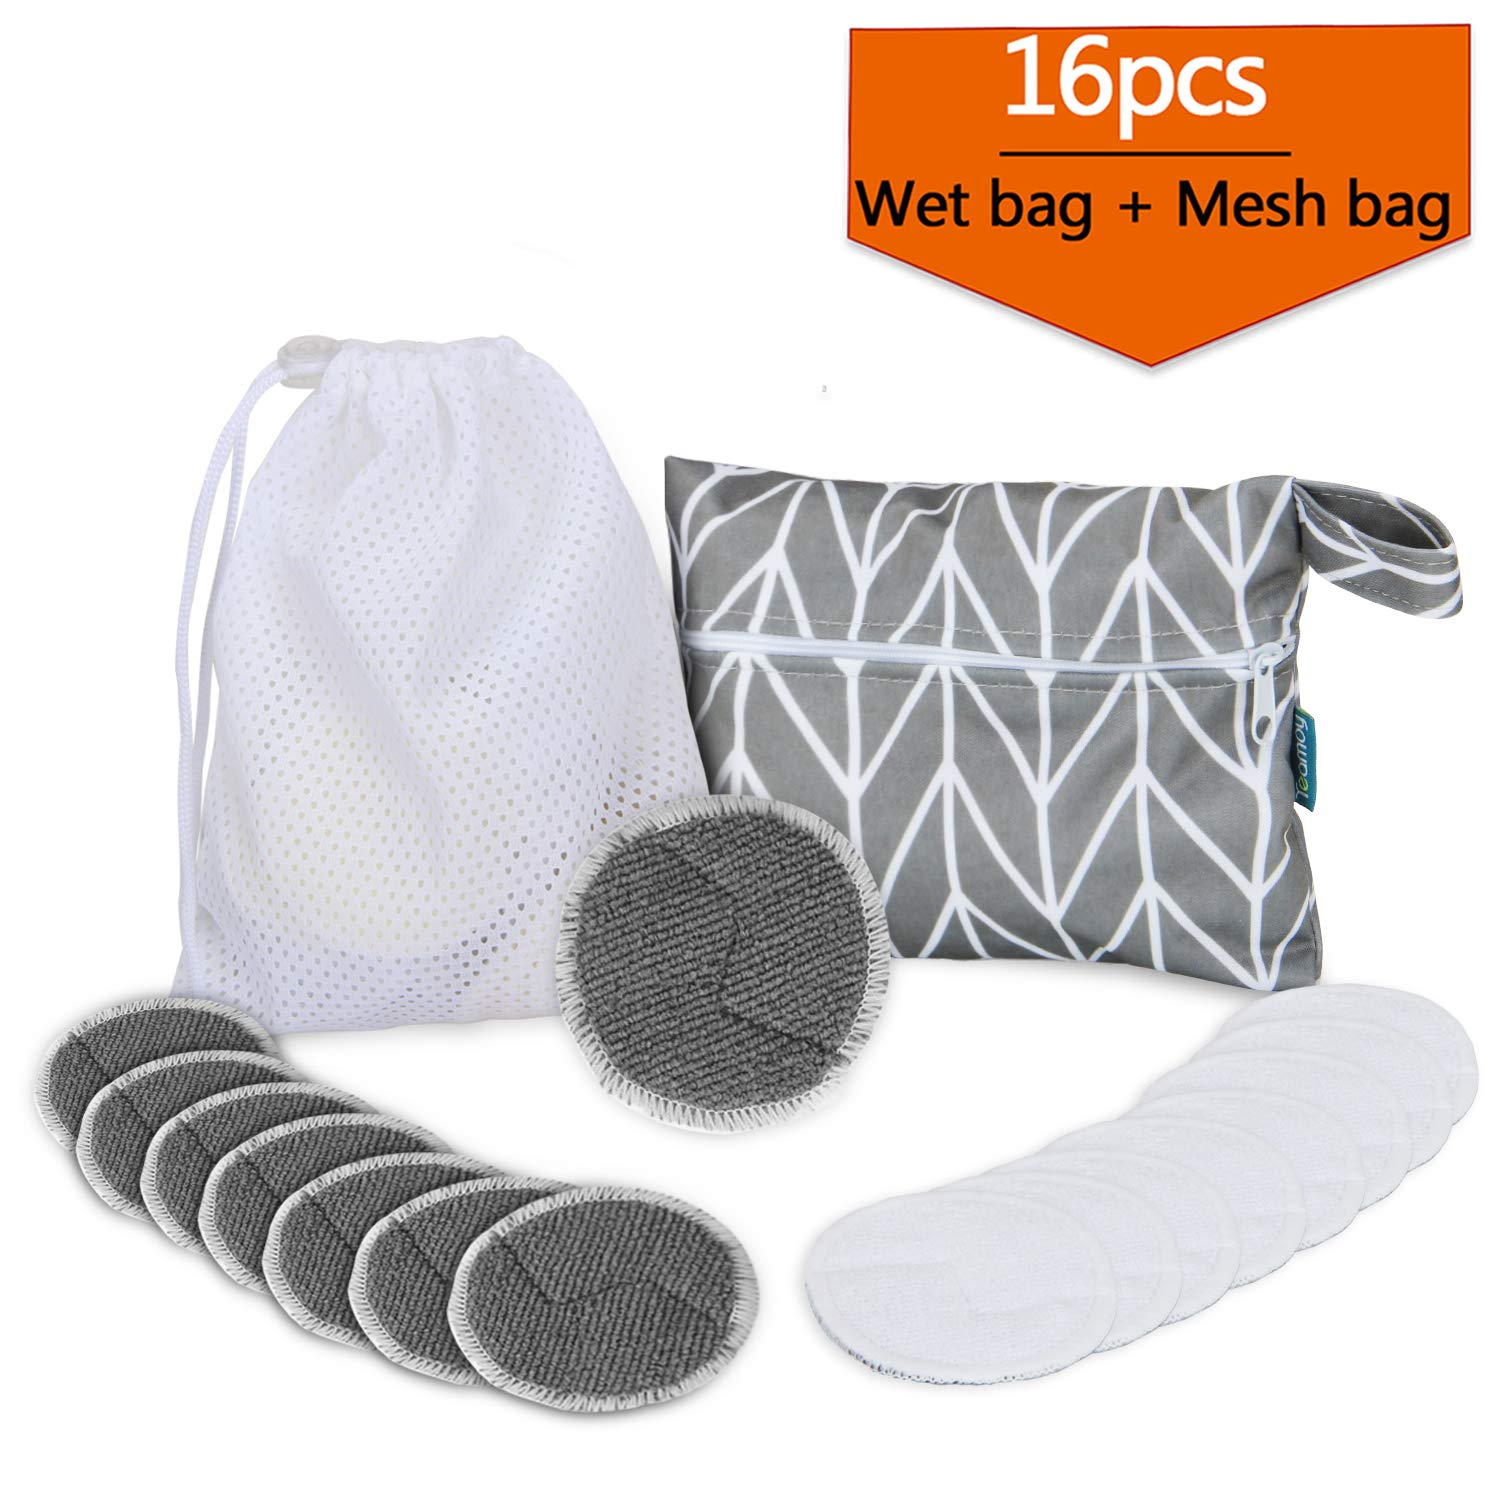 16Pcs Reusable Makeup Remover Pads with 2 EXTRA Bags(Laundry and Storage Bag), 2-Sided Microfiber Face Rounds for Face, Super Soft and Absorption Wash Cloth Pads by Teamoy